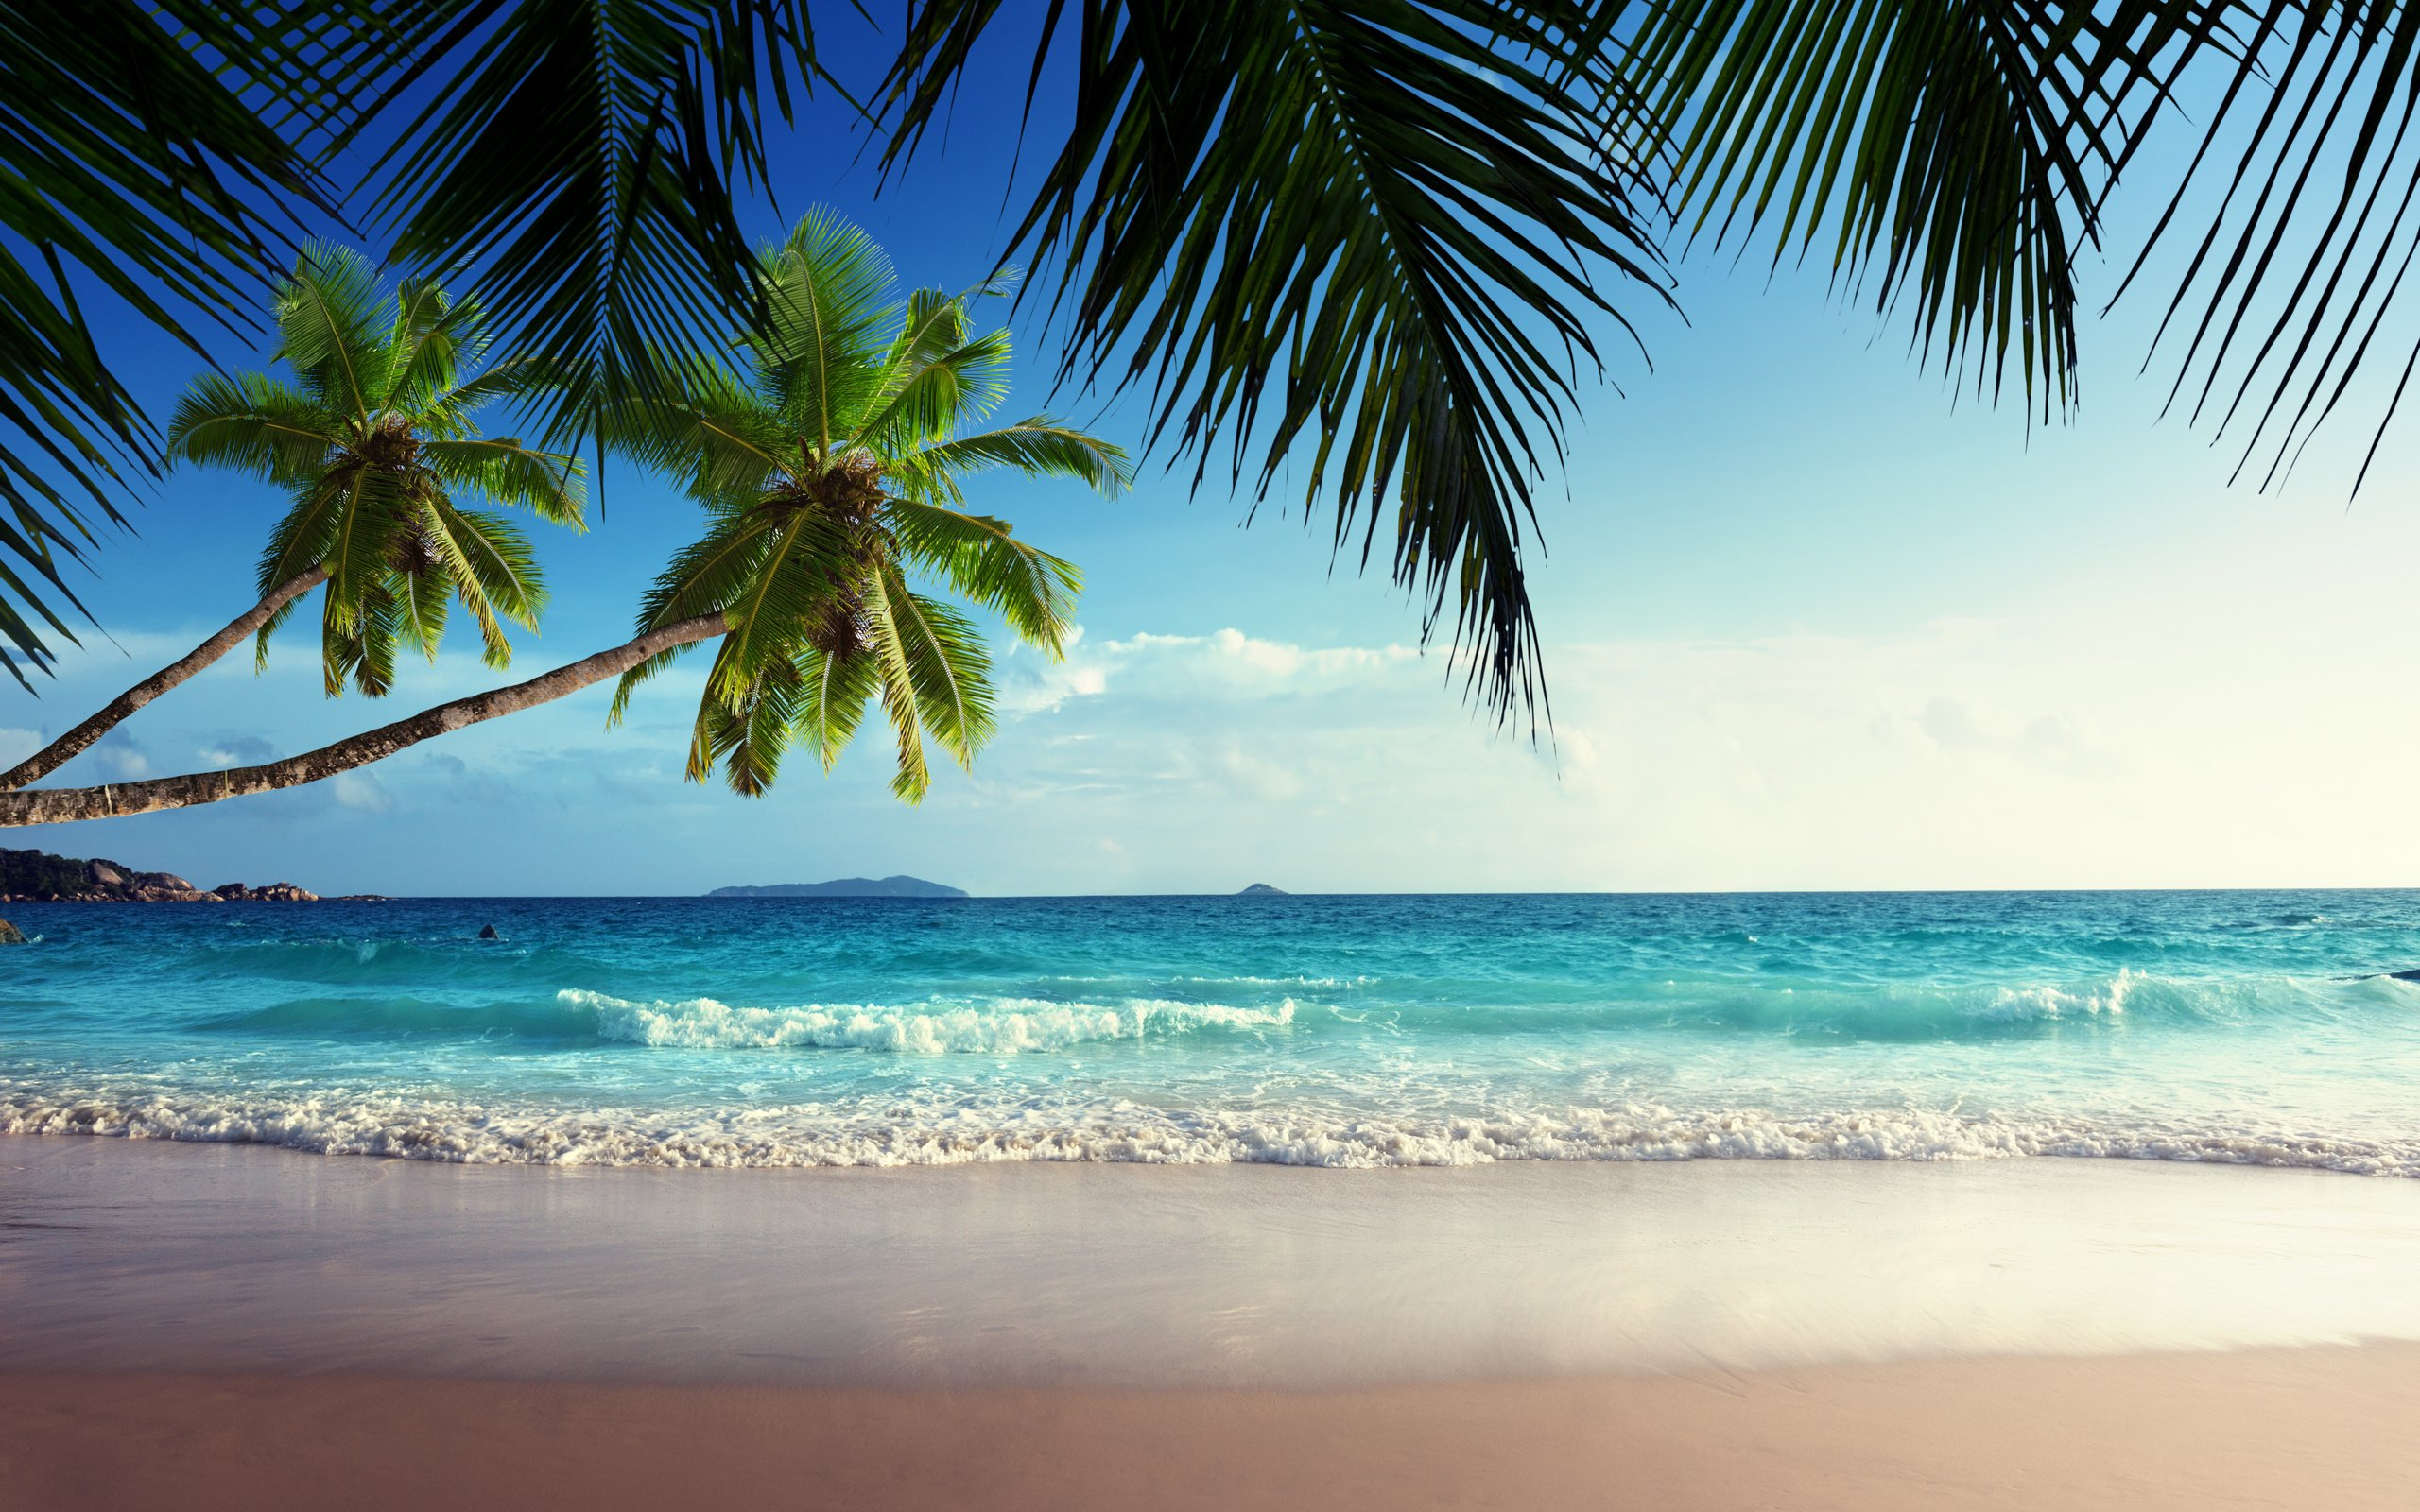 Tropical Beach Paradis HD Wallpaper, Background Images